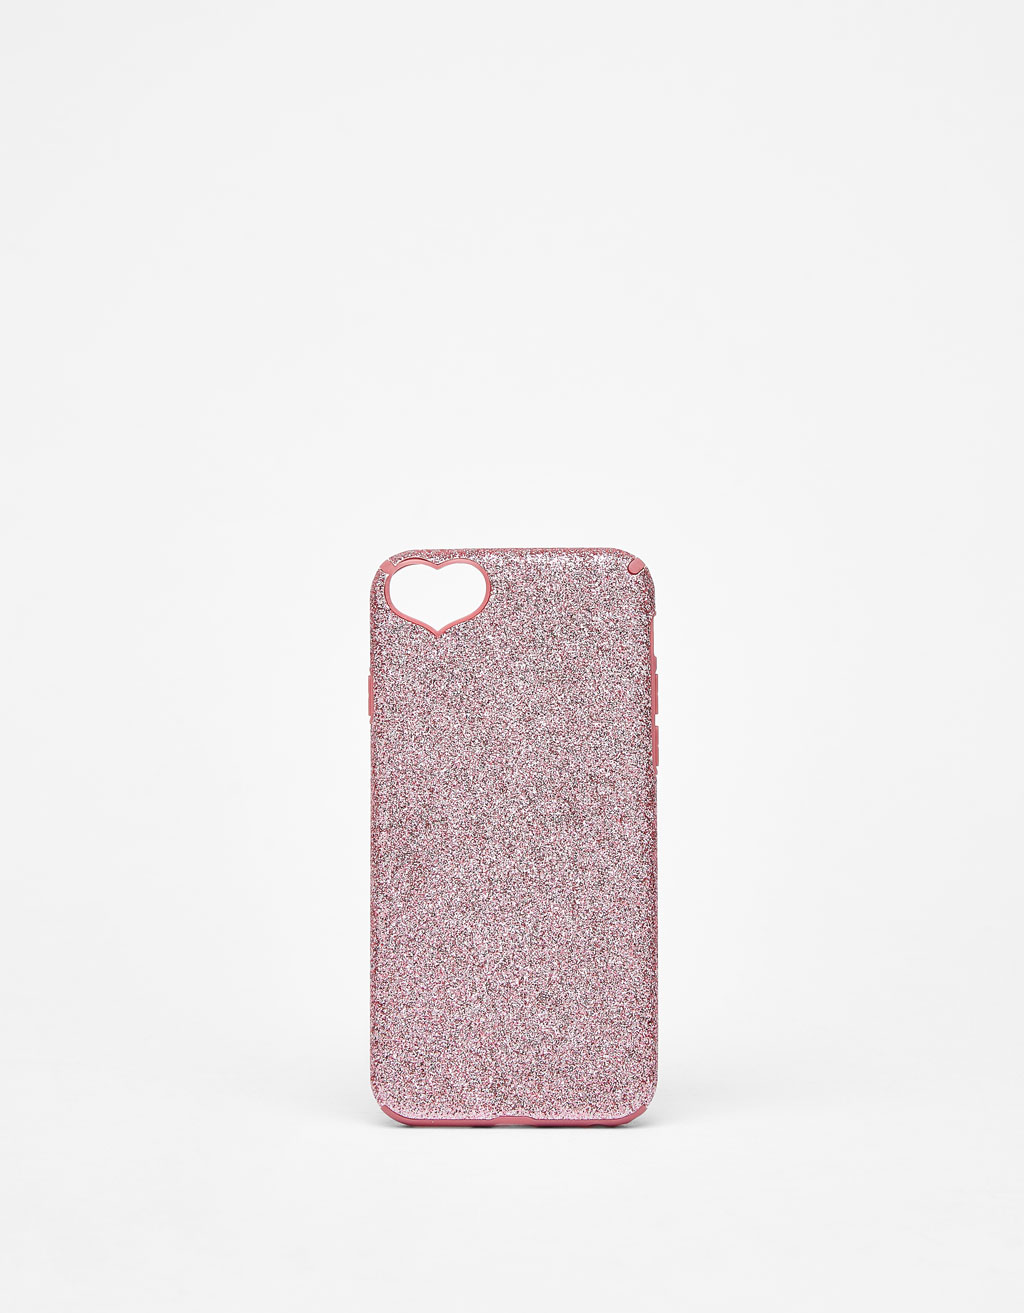 iPhone 6/6s/7 hoesje met purpurine